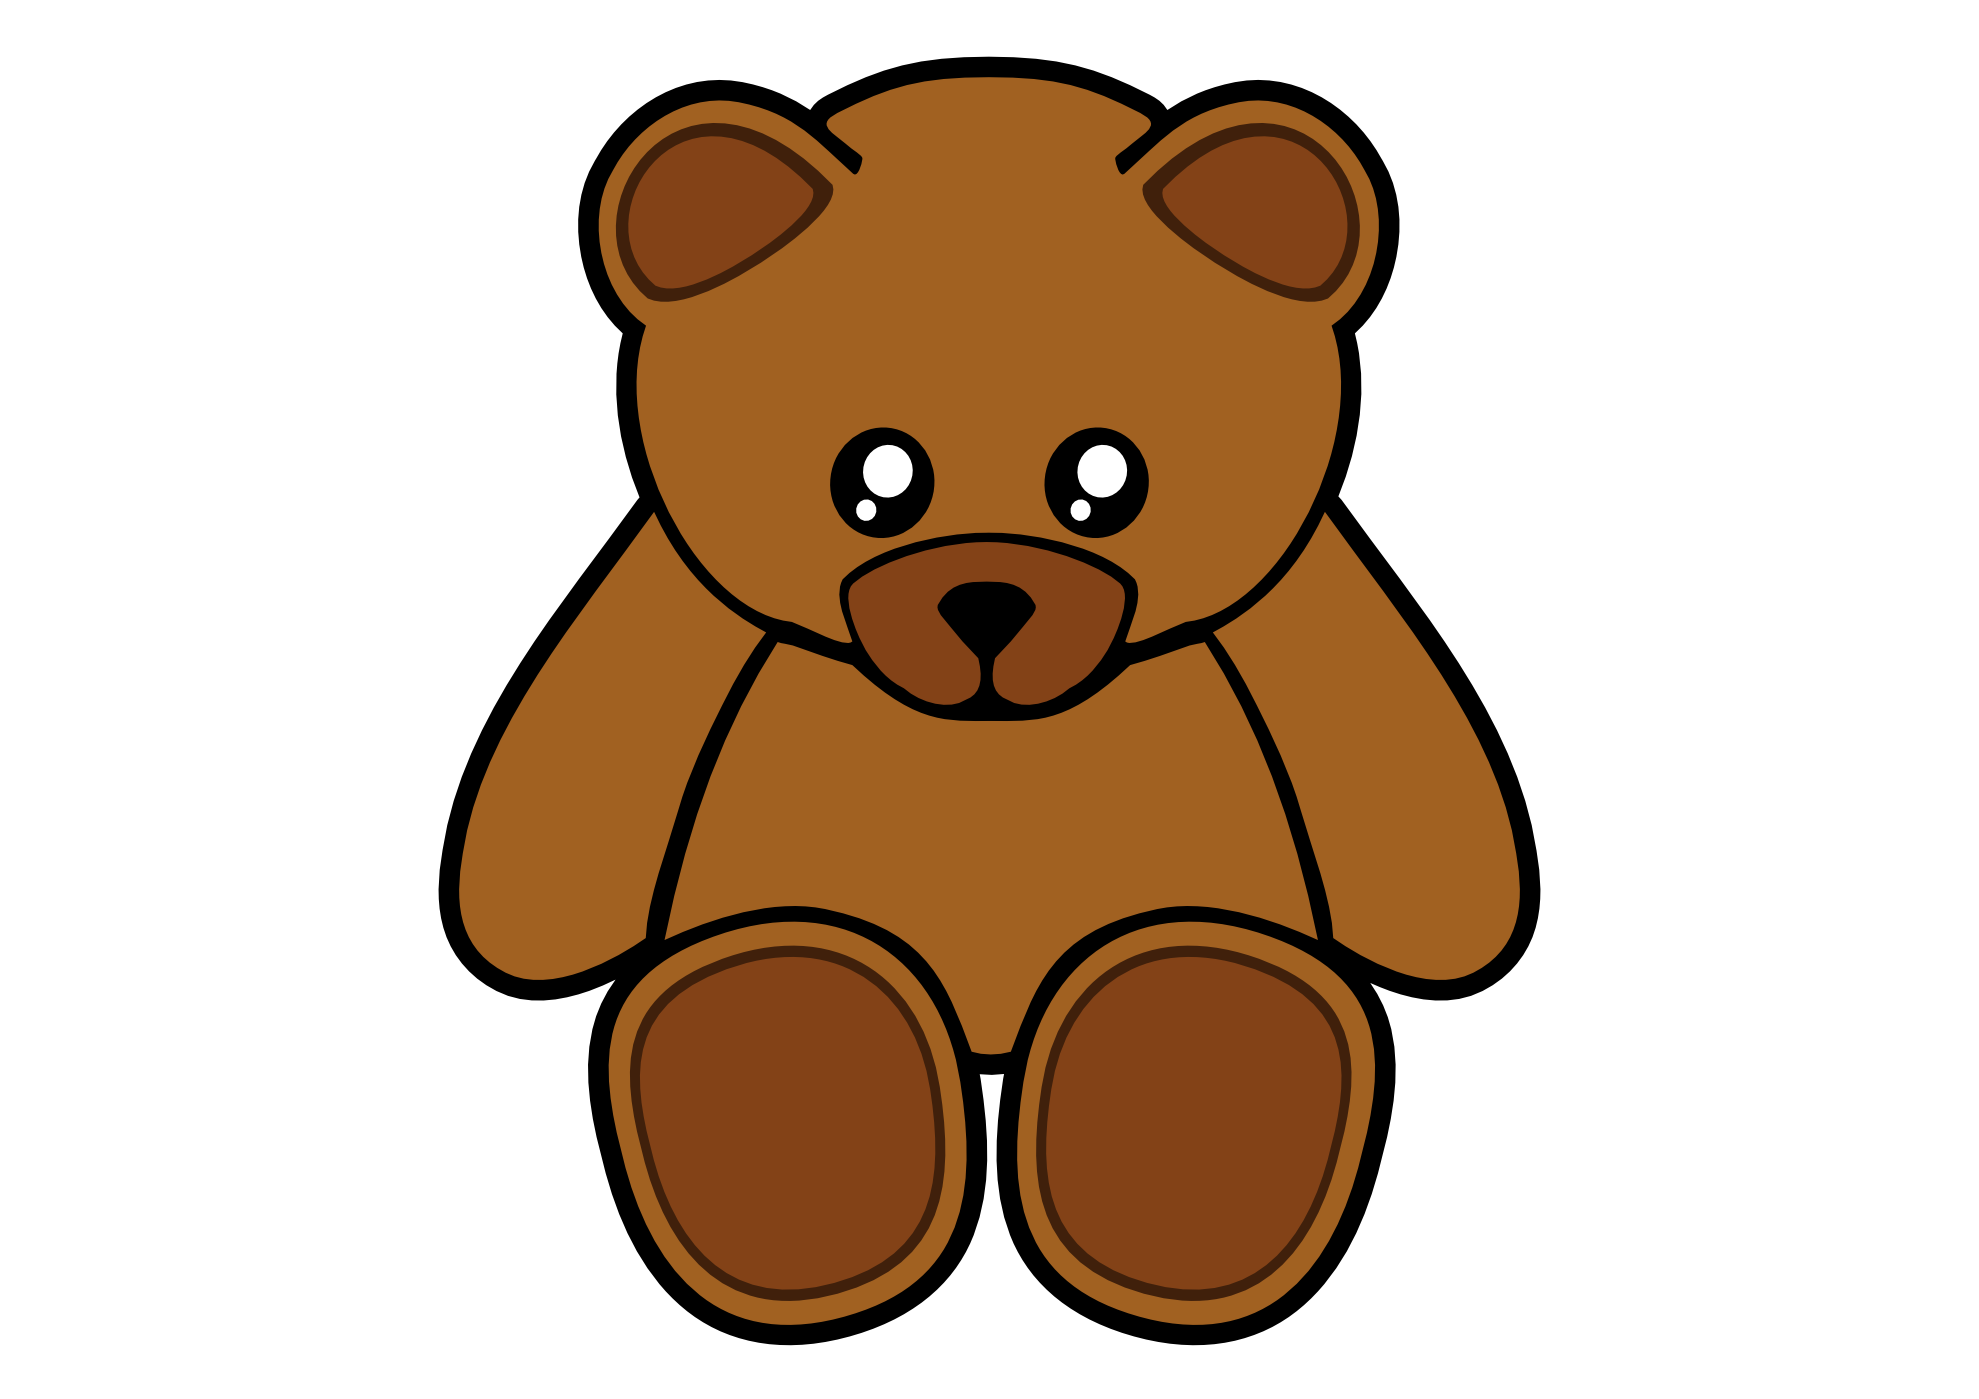 1979x1399 Free Animated Teddy Bear Clipart